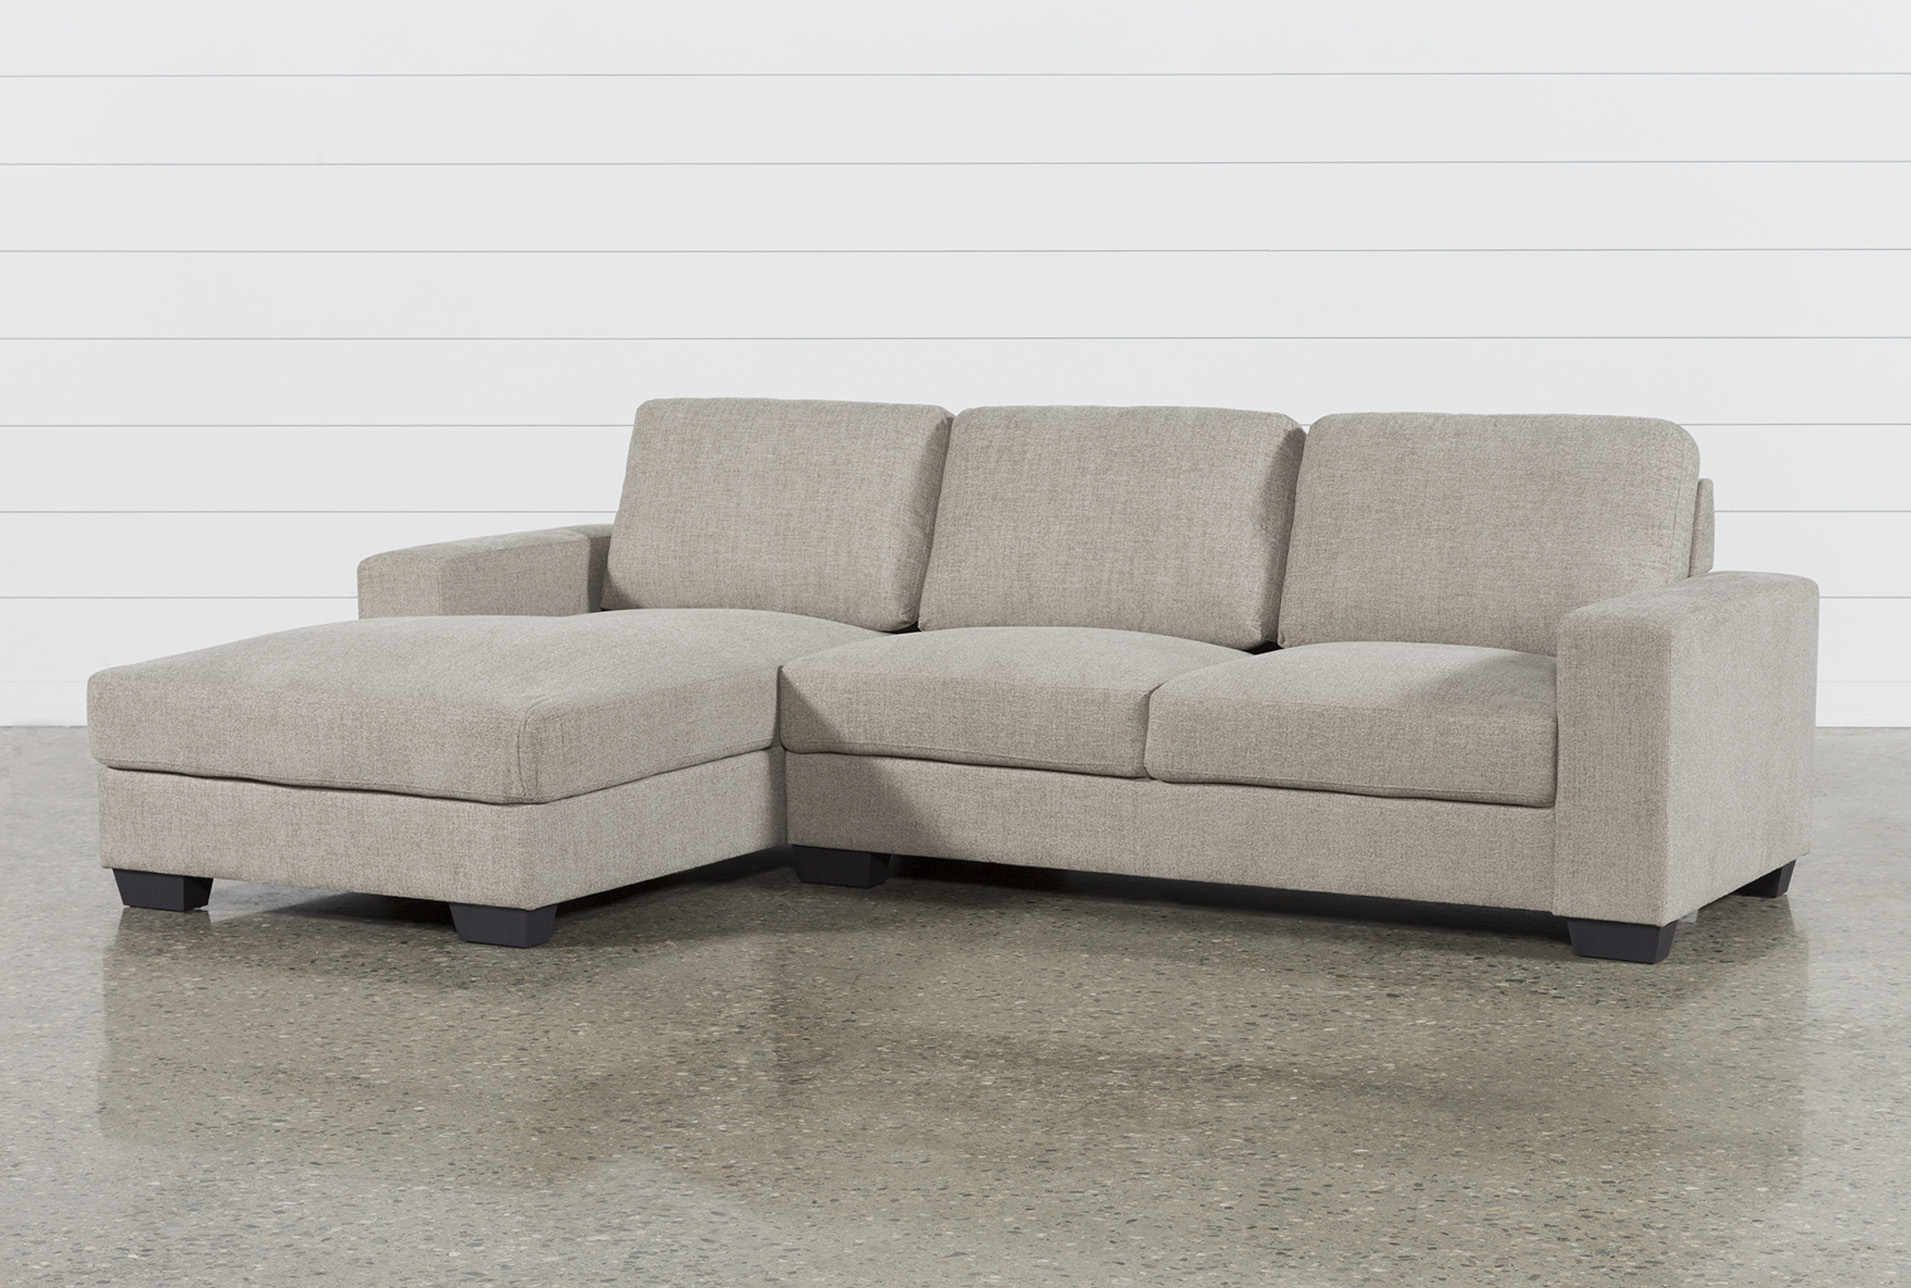 Jobs Oat 2 Piece Sectional With Left Facing Chaise (Qty: 1) Has Been  Successfully Added To Your Cart.